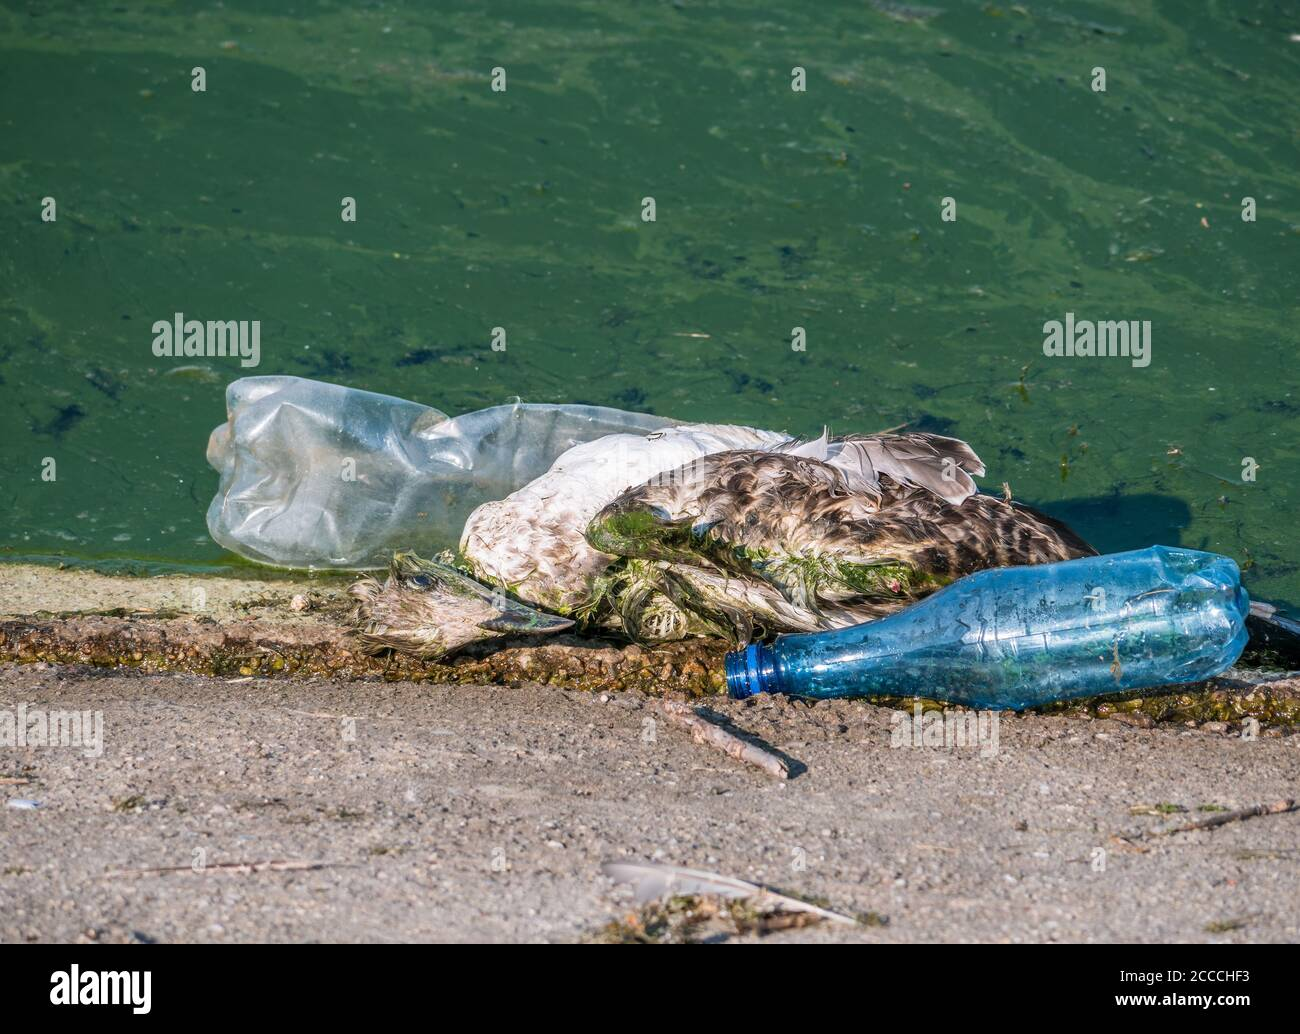 A Dead Seagull Or Bird At The Edge Of The Water Next To Plastic Bottles Pet Plastic Pollution Concept Stock Photo Alamy